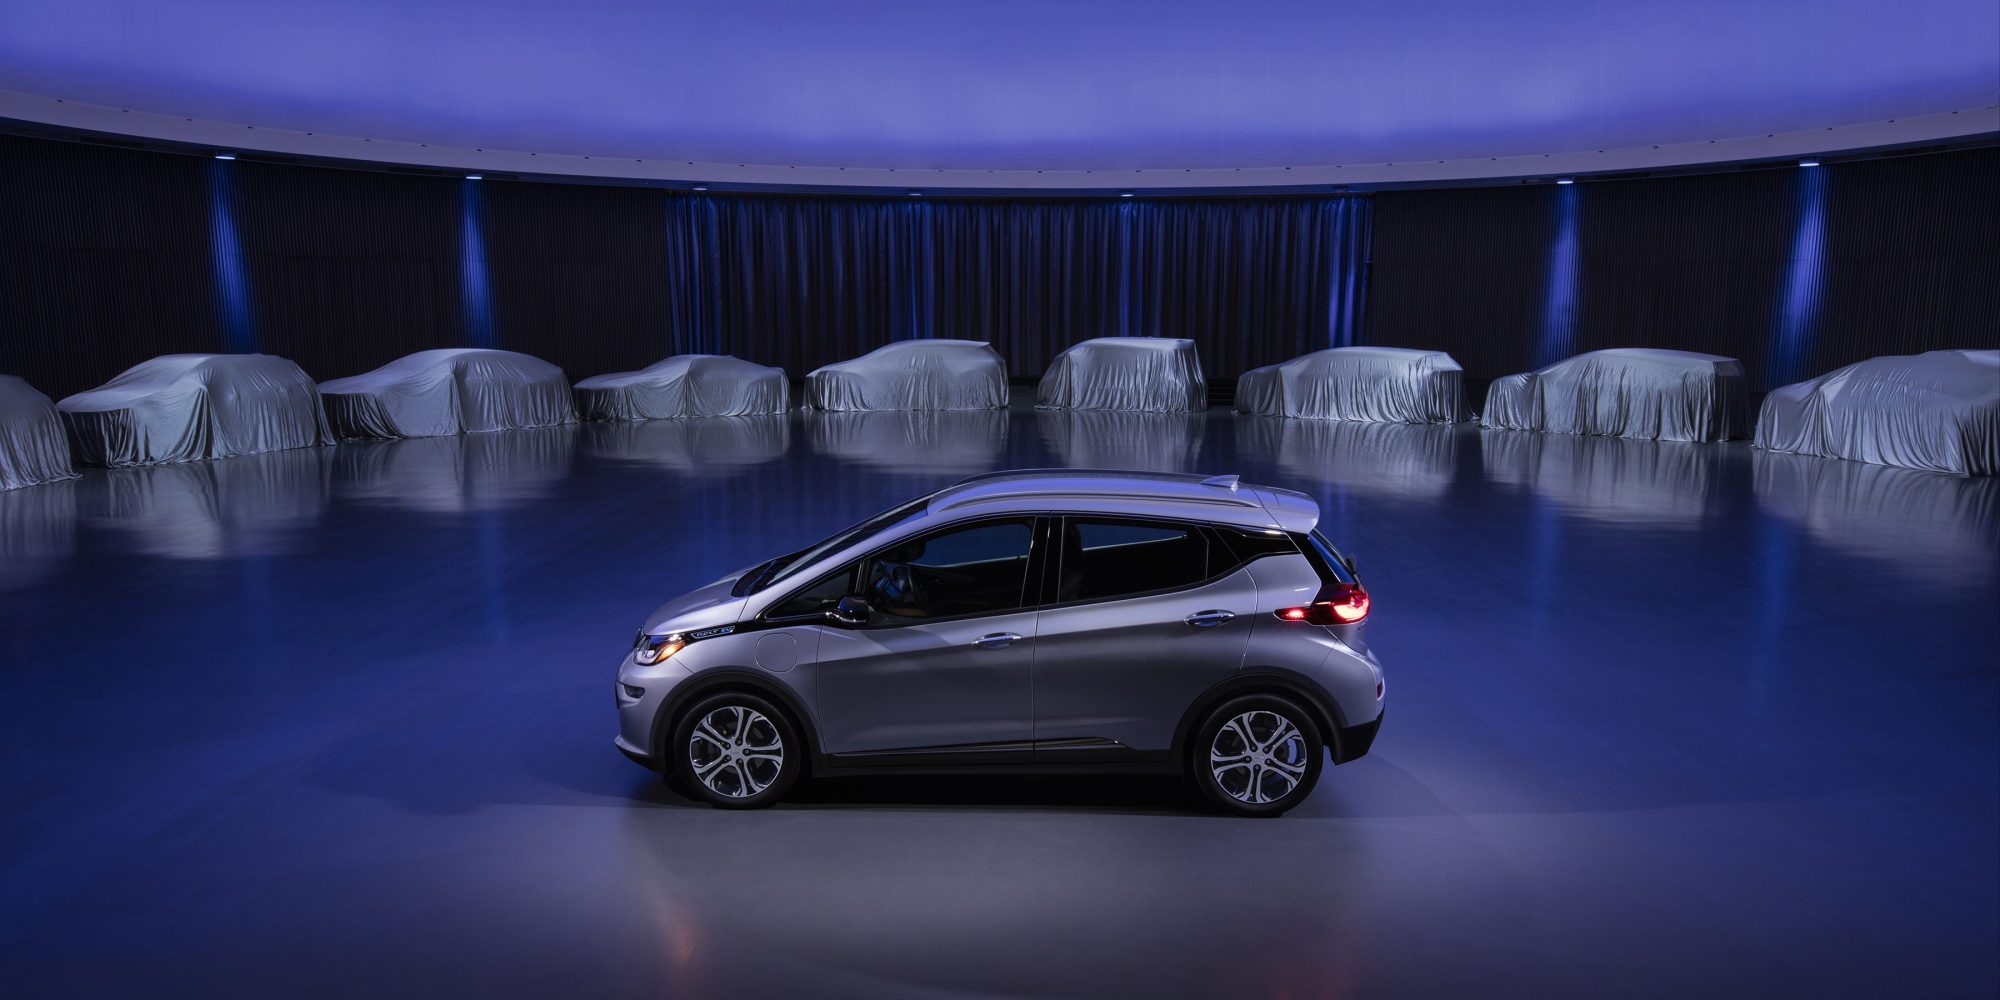 GM promises 1 million EVs worldwide by 2026